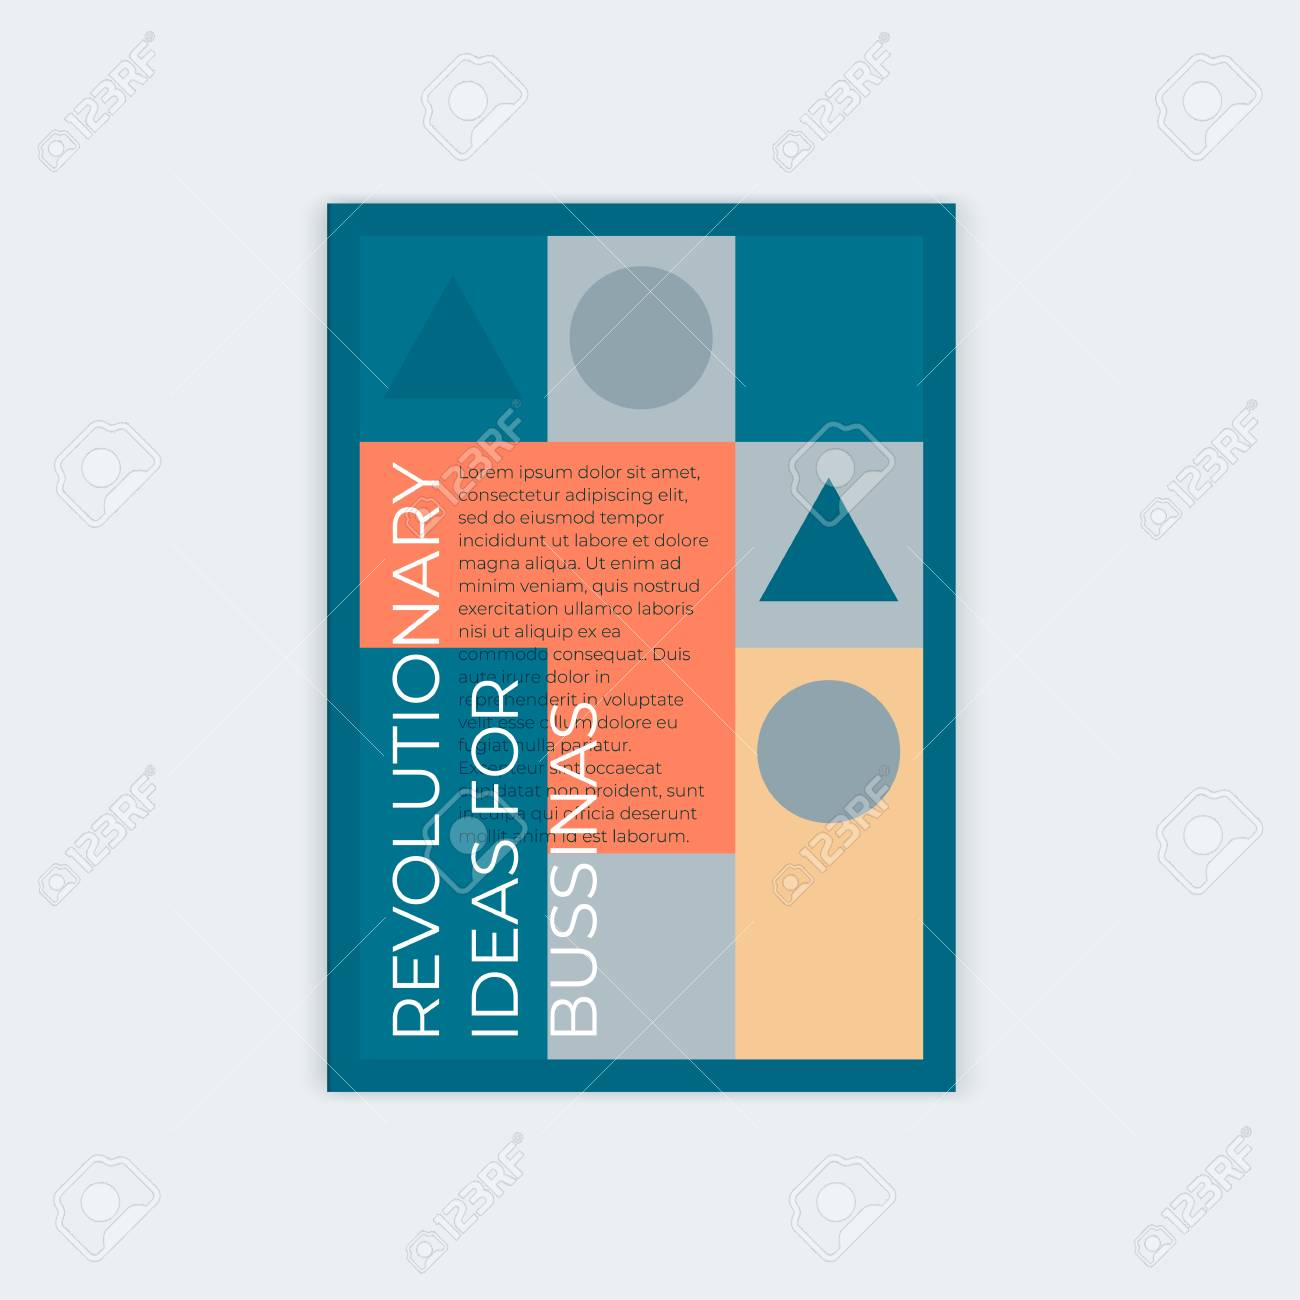 Template design for vertical abstract cover A4 with place for text. For the design of a booklet, a poster, leaflets, books. - 116769601